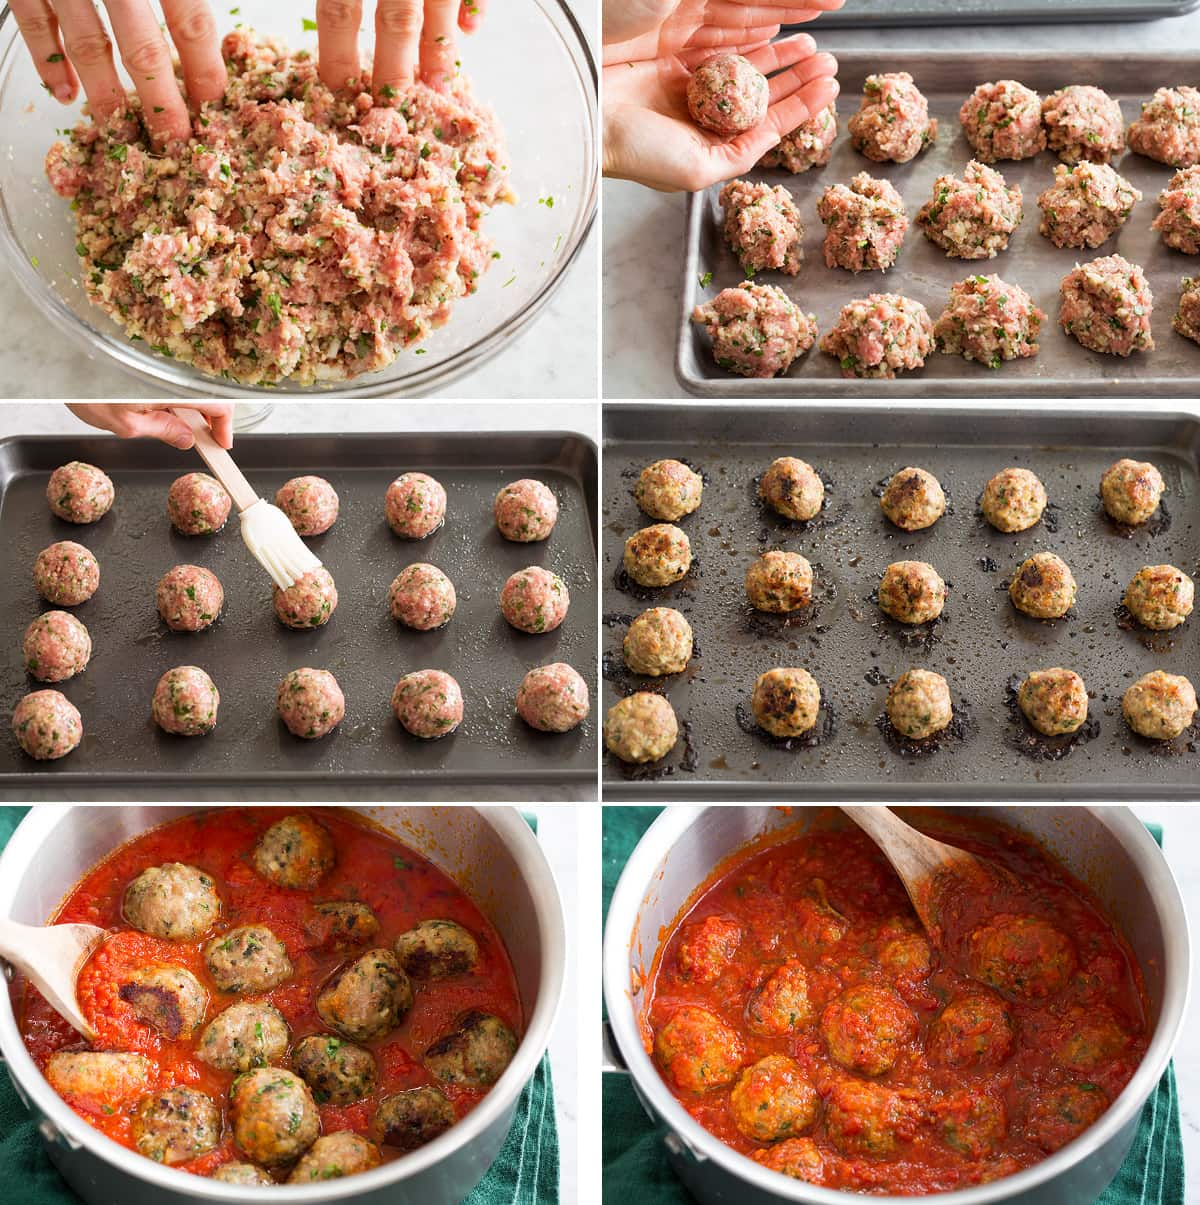 Collage of six images showing shaping turkey meatballs, aligning and baking on baking sheet then cooking in marinara sauce.